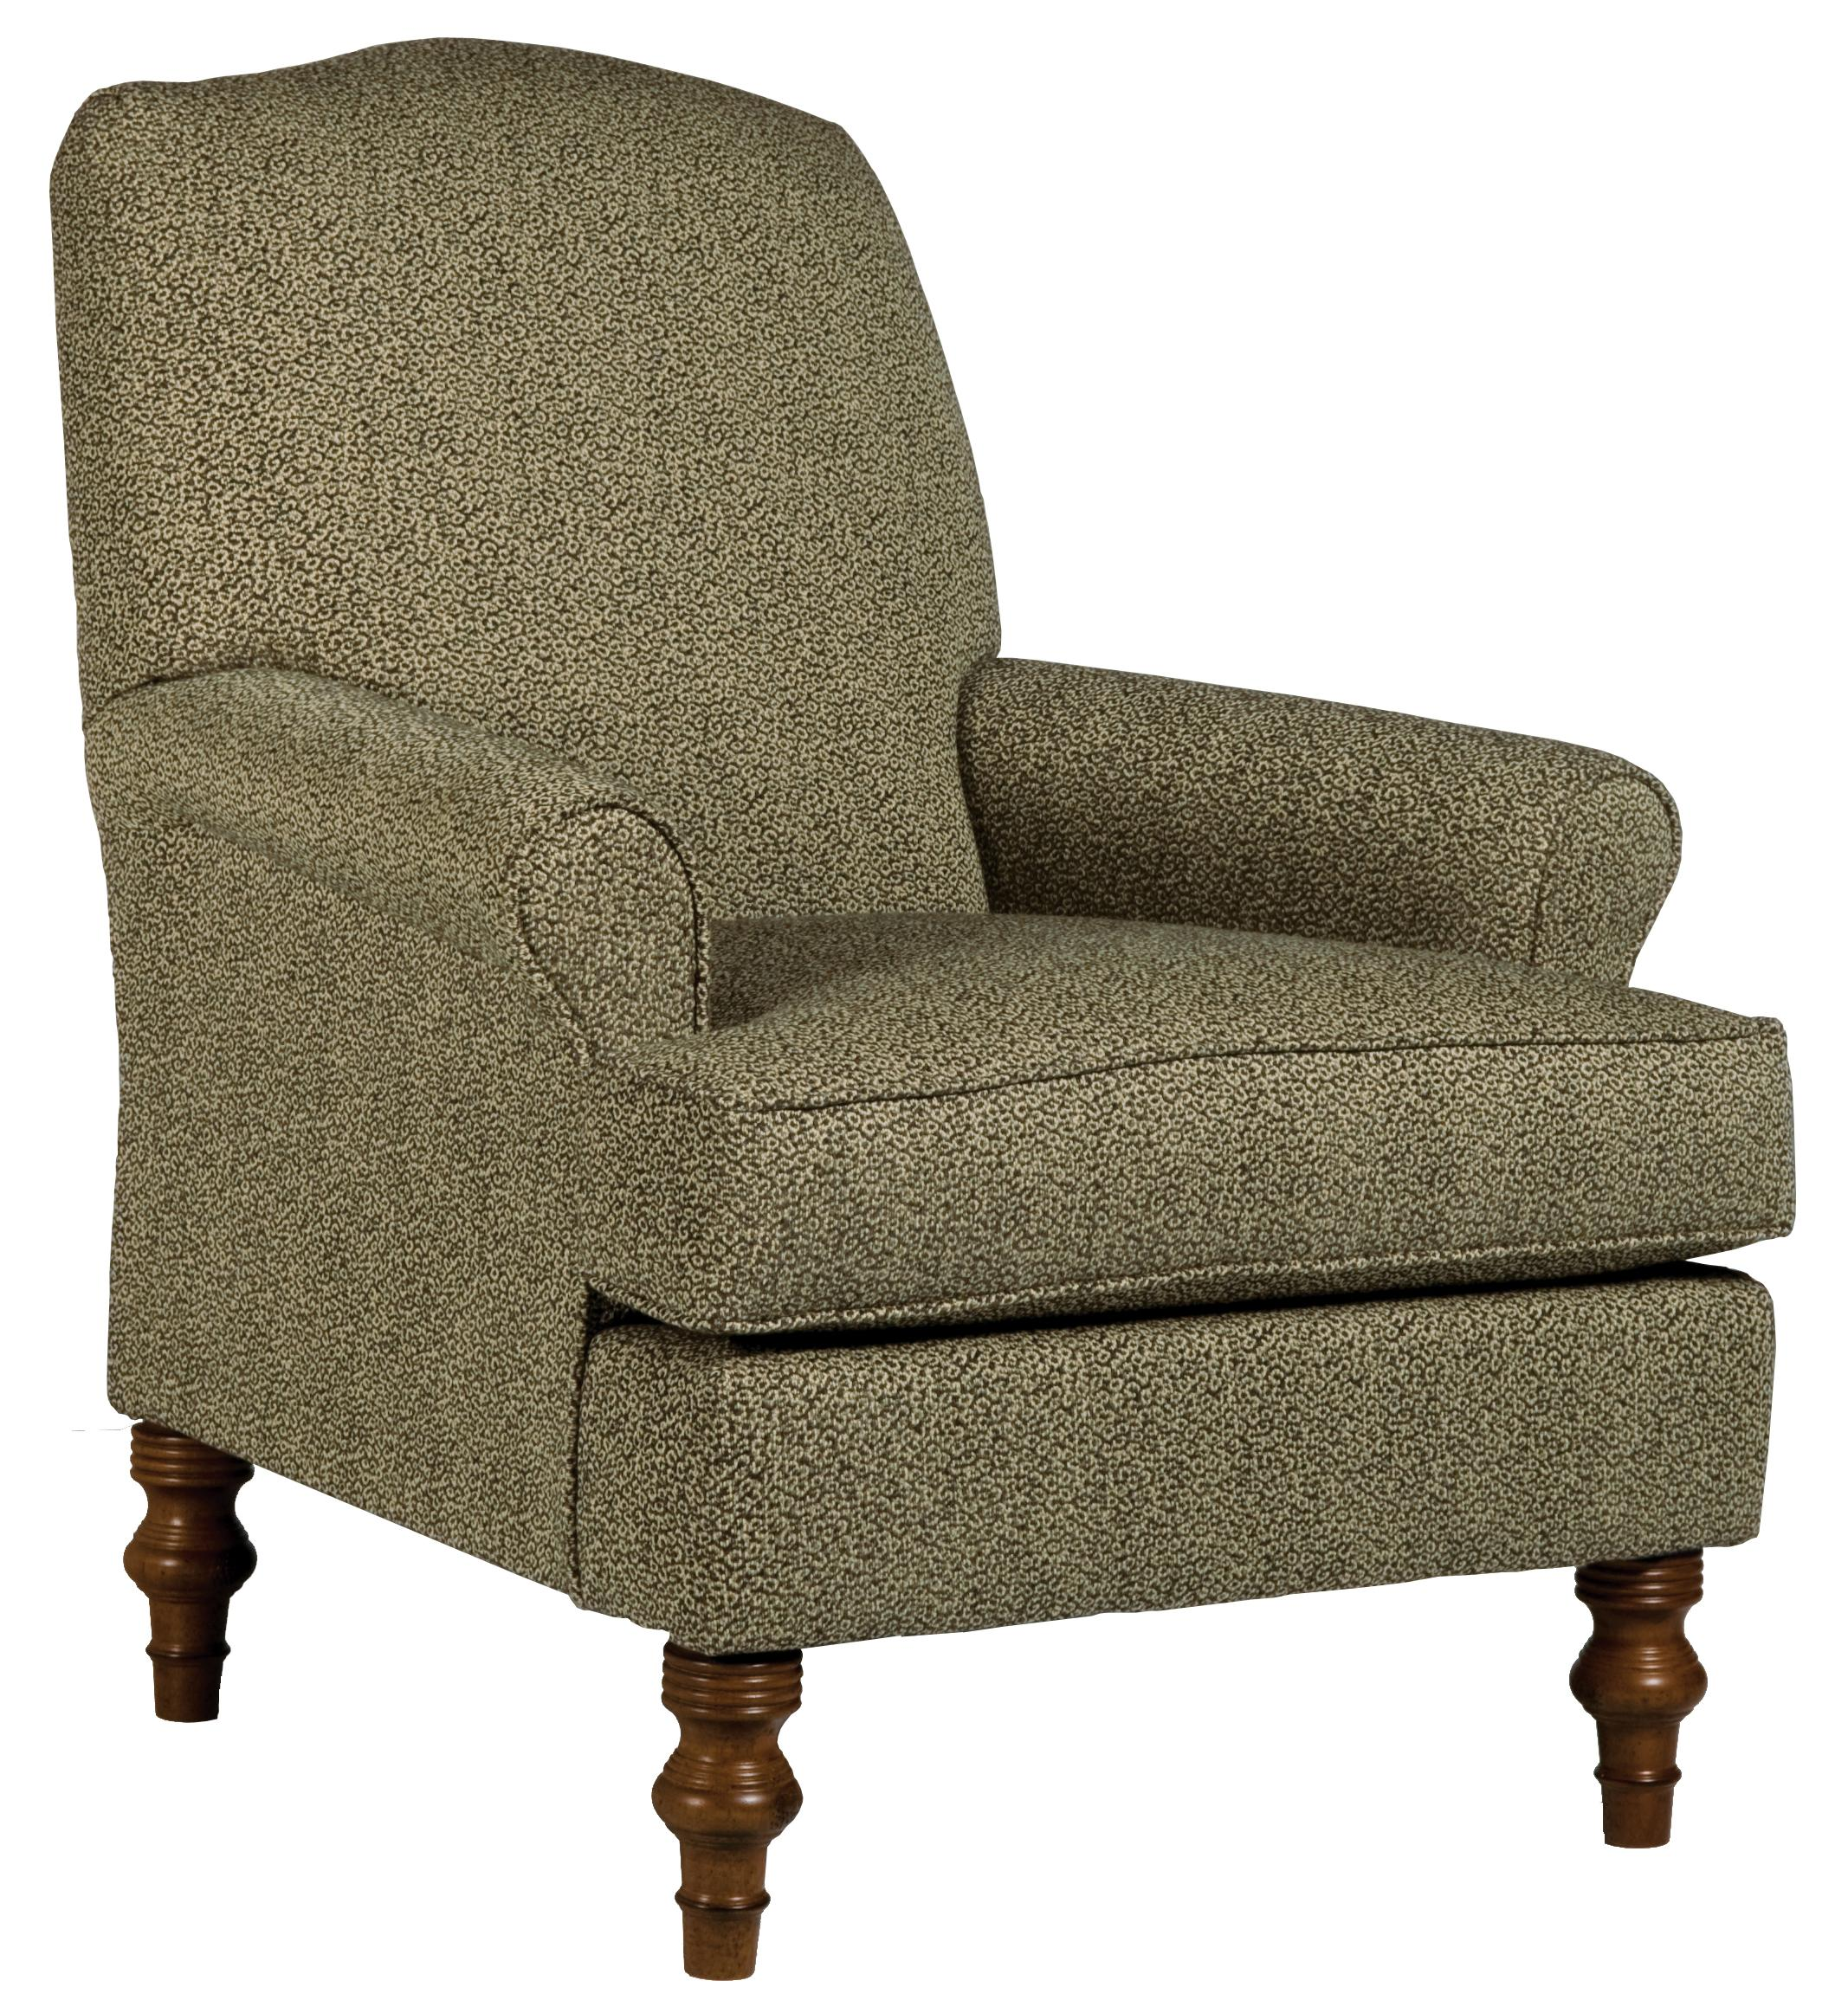 Best Home Furnishings Chairs - Club   - Item Number: 4210